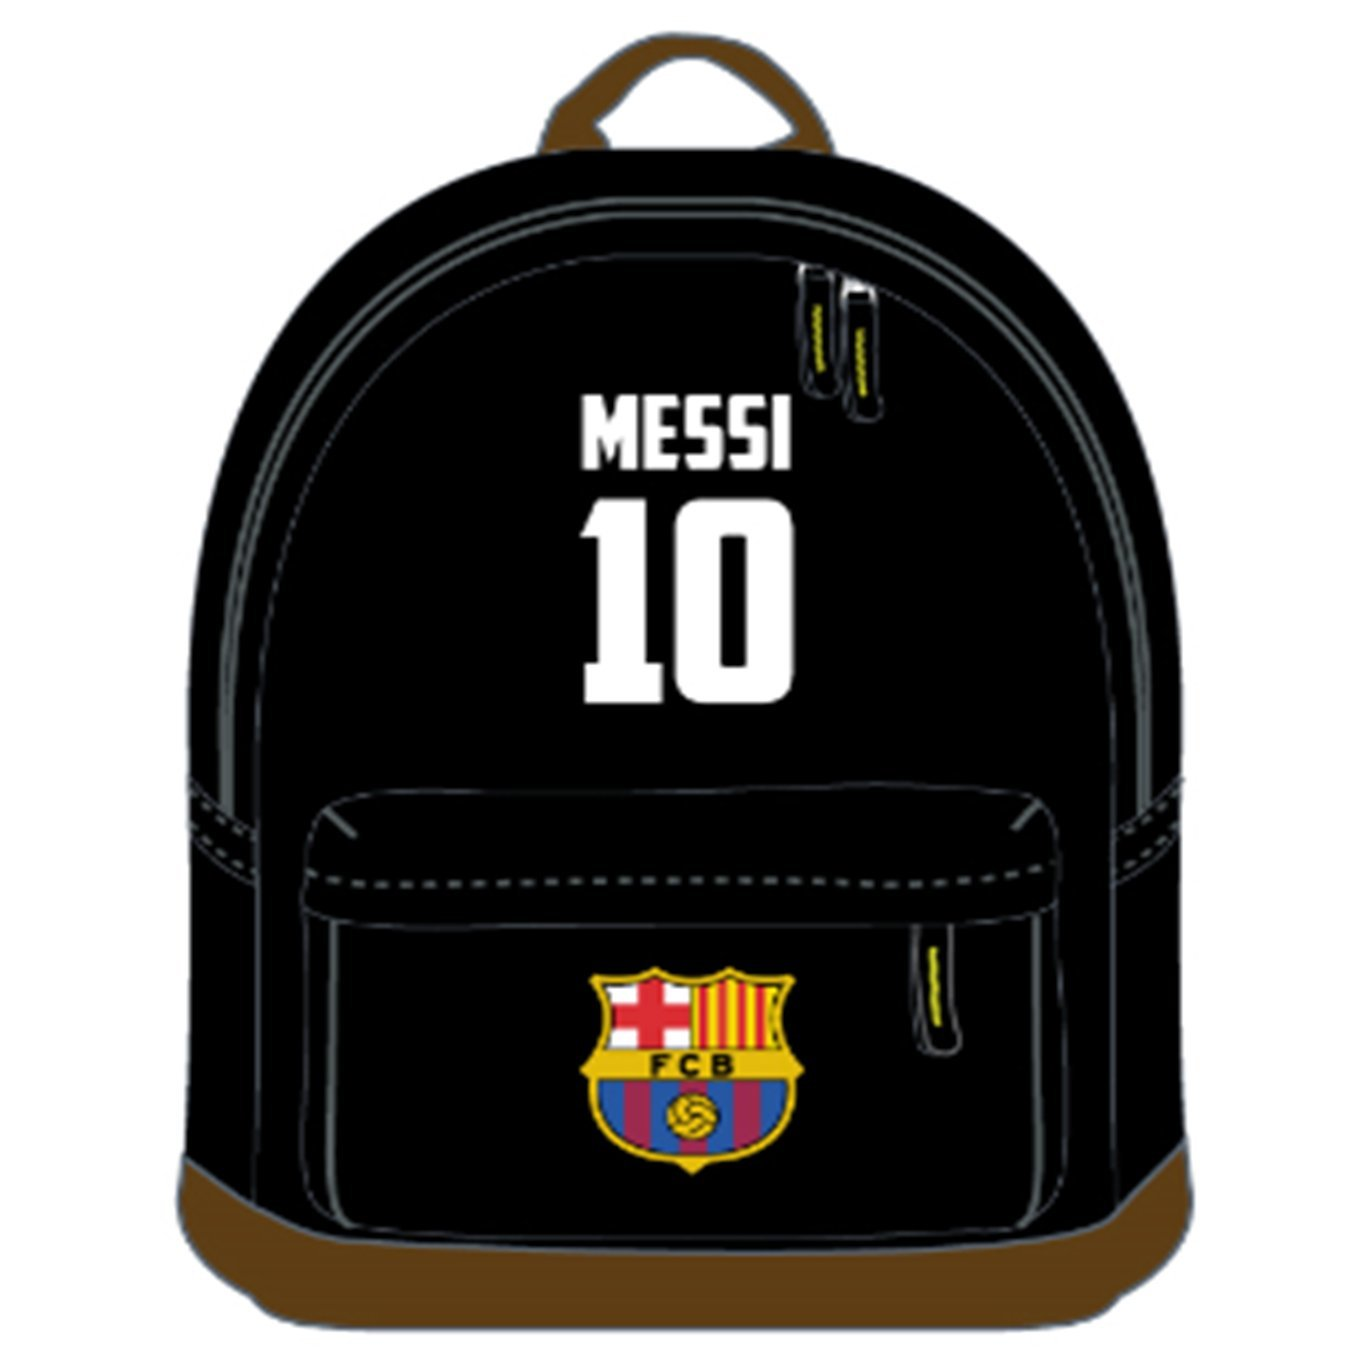 Amazon.com : LIONEL MESSI FC BARCELONA BACK PACK OFFICIALLY LICENSED : Sports & Outdoors